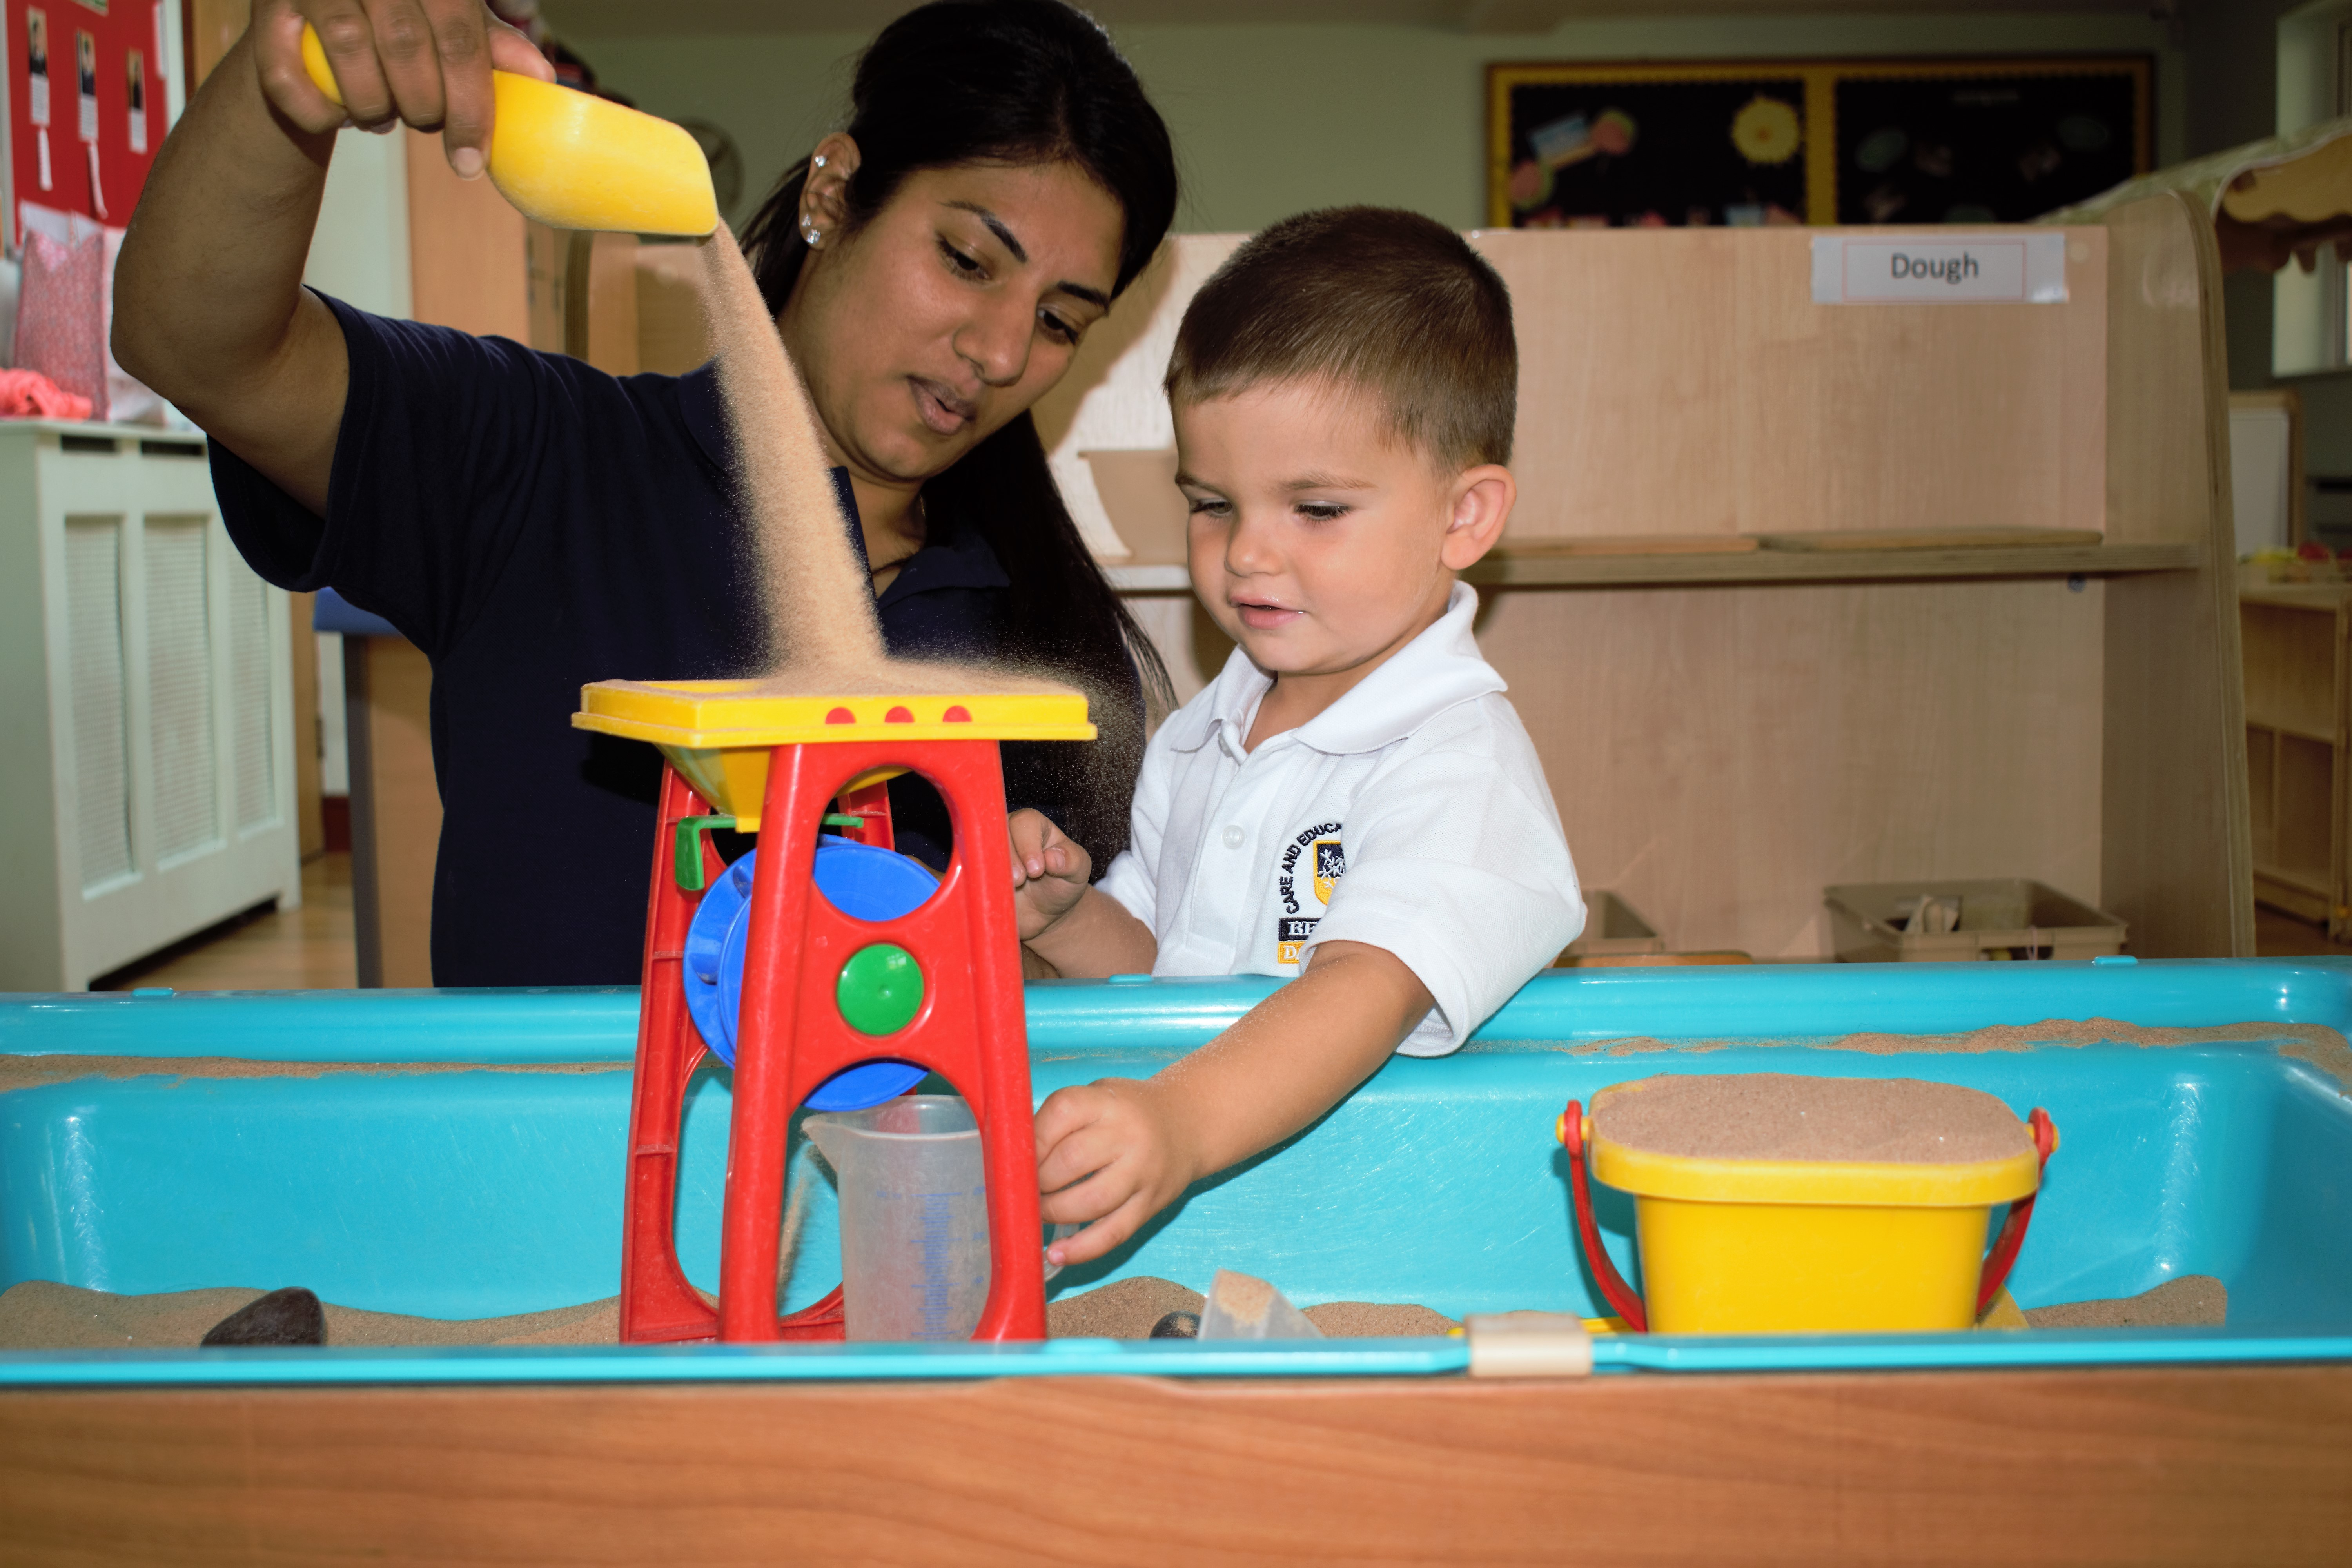 A Select Number Of Childcare And Training Organisation Offer Supervised Placements For Students Who Are Working Towards The Nvq Level 2 Or